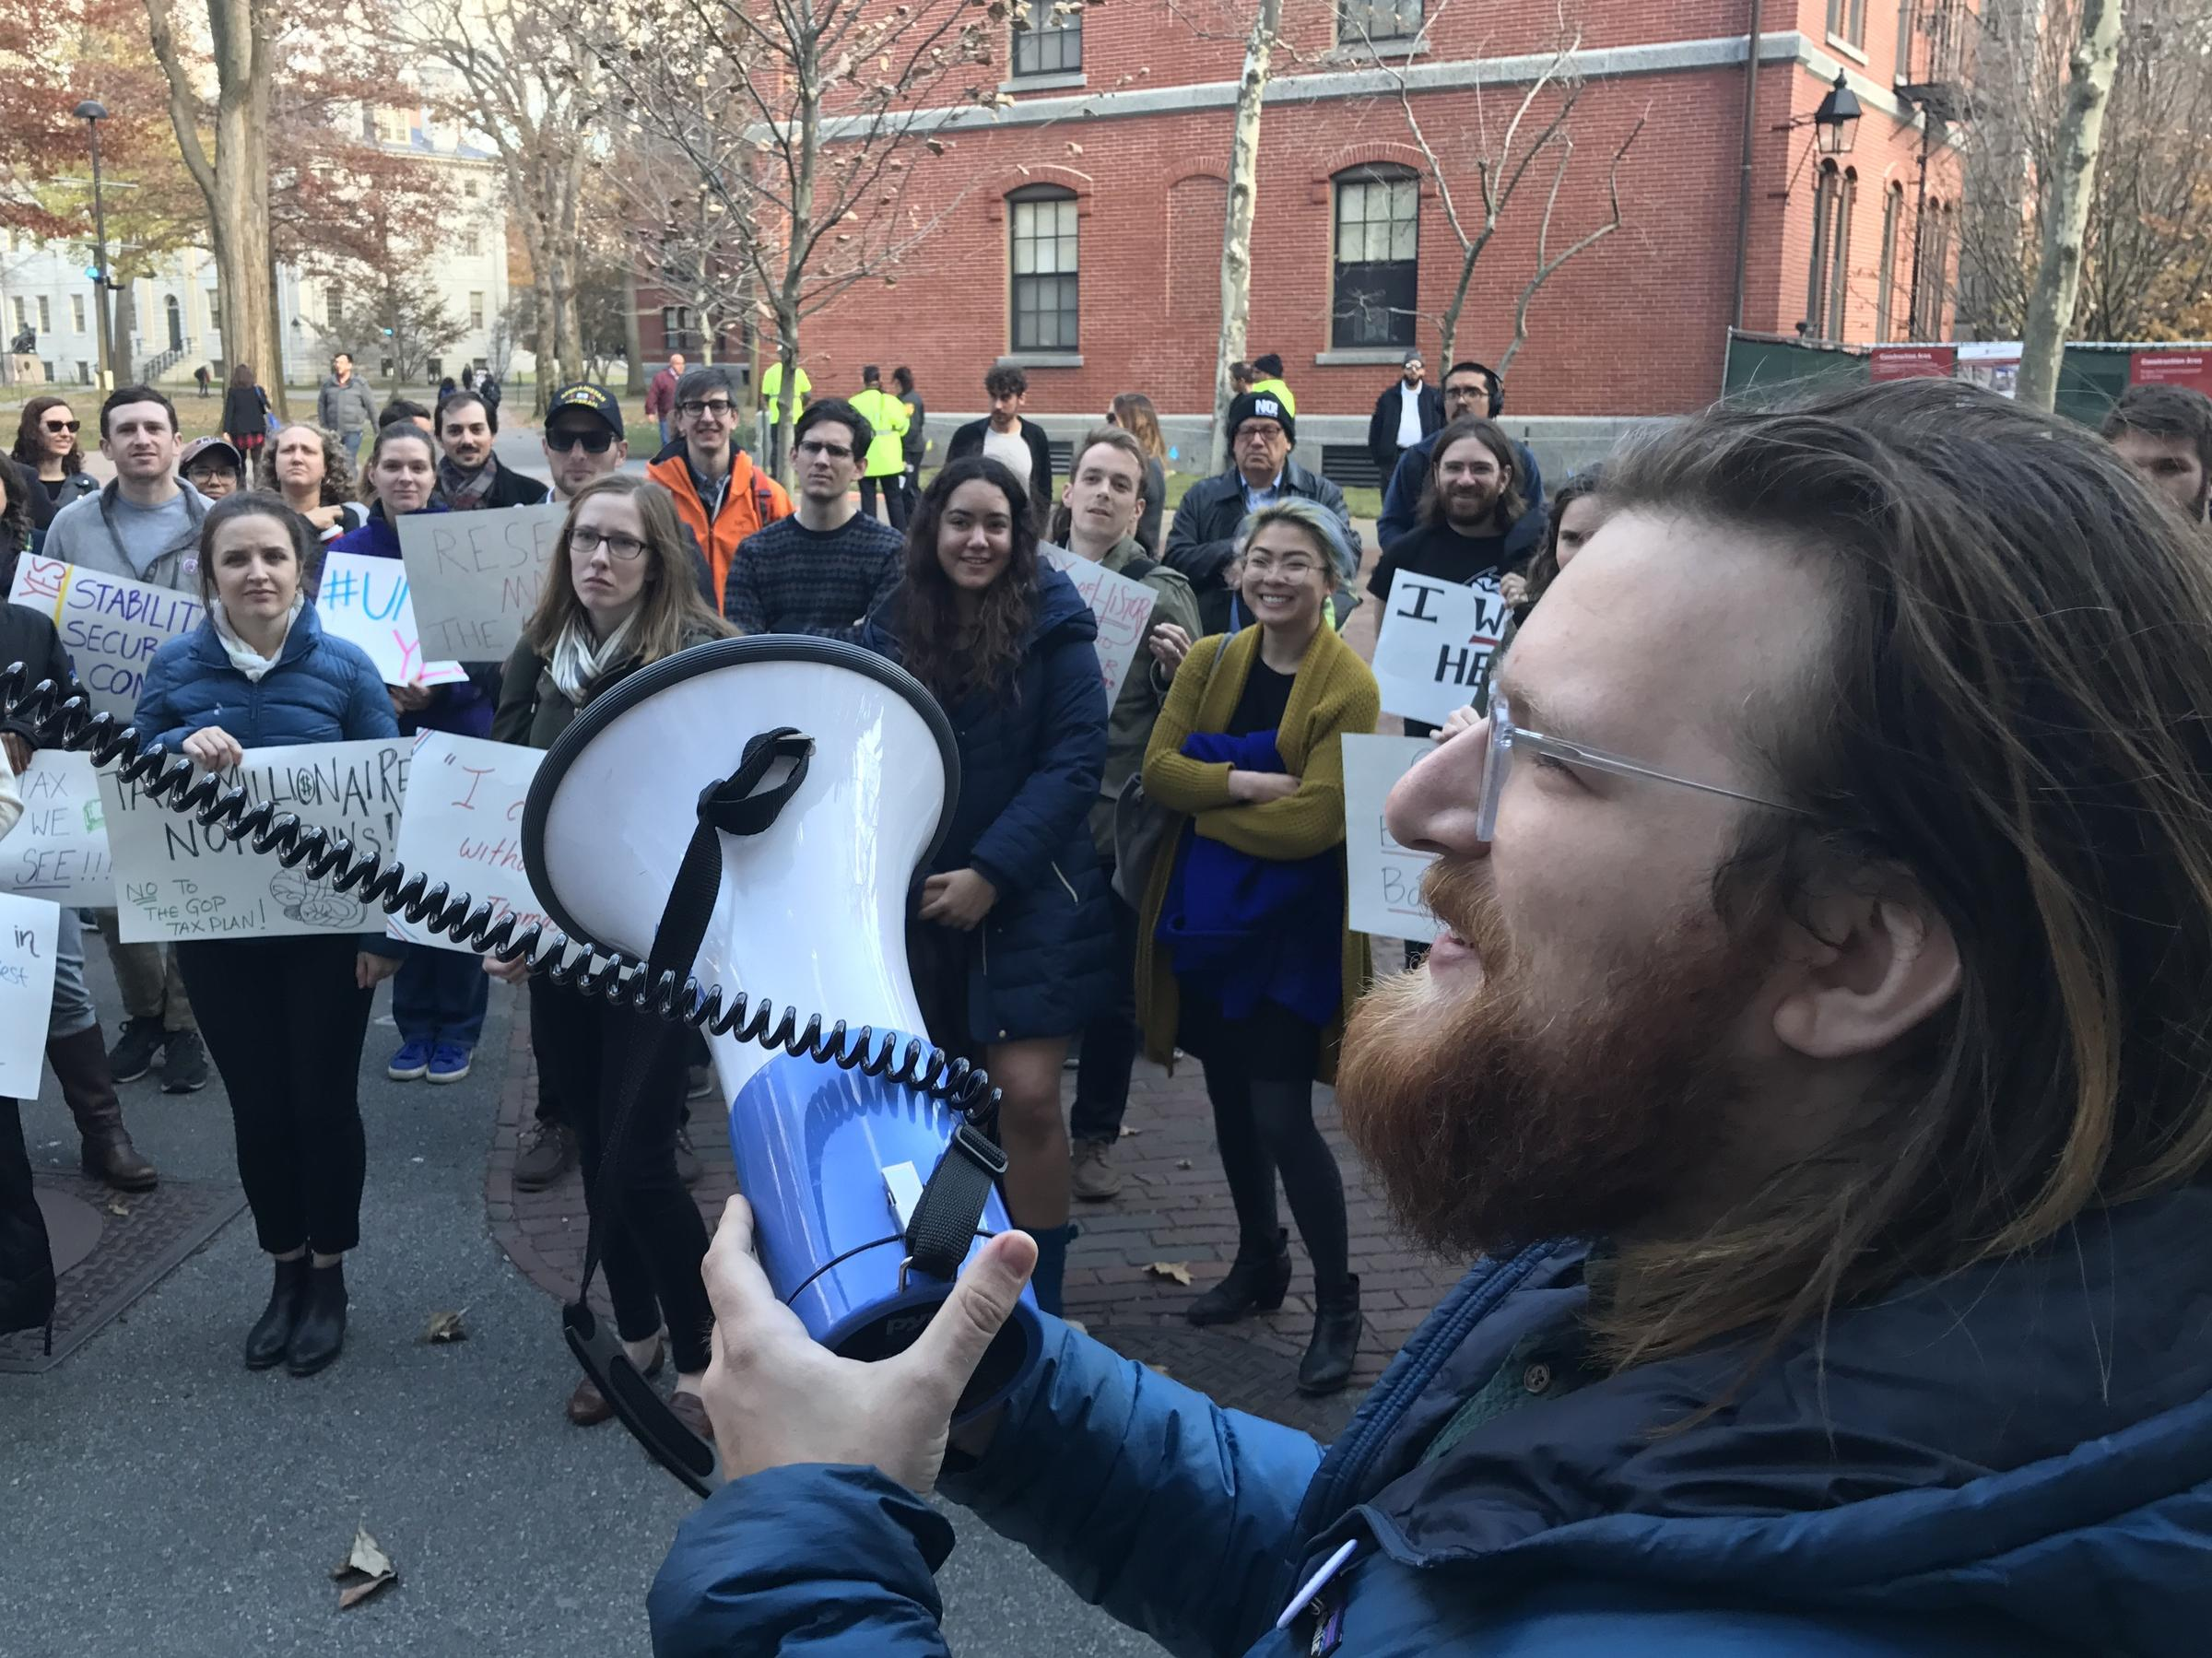 Harvard graduate student Jack Nicoludis, who helped organize a campus protest on Wednesday says the House tax bill would more than double his taxes.